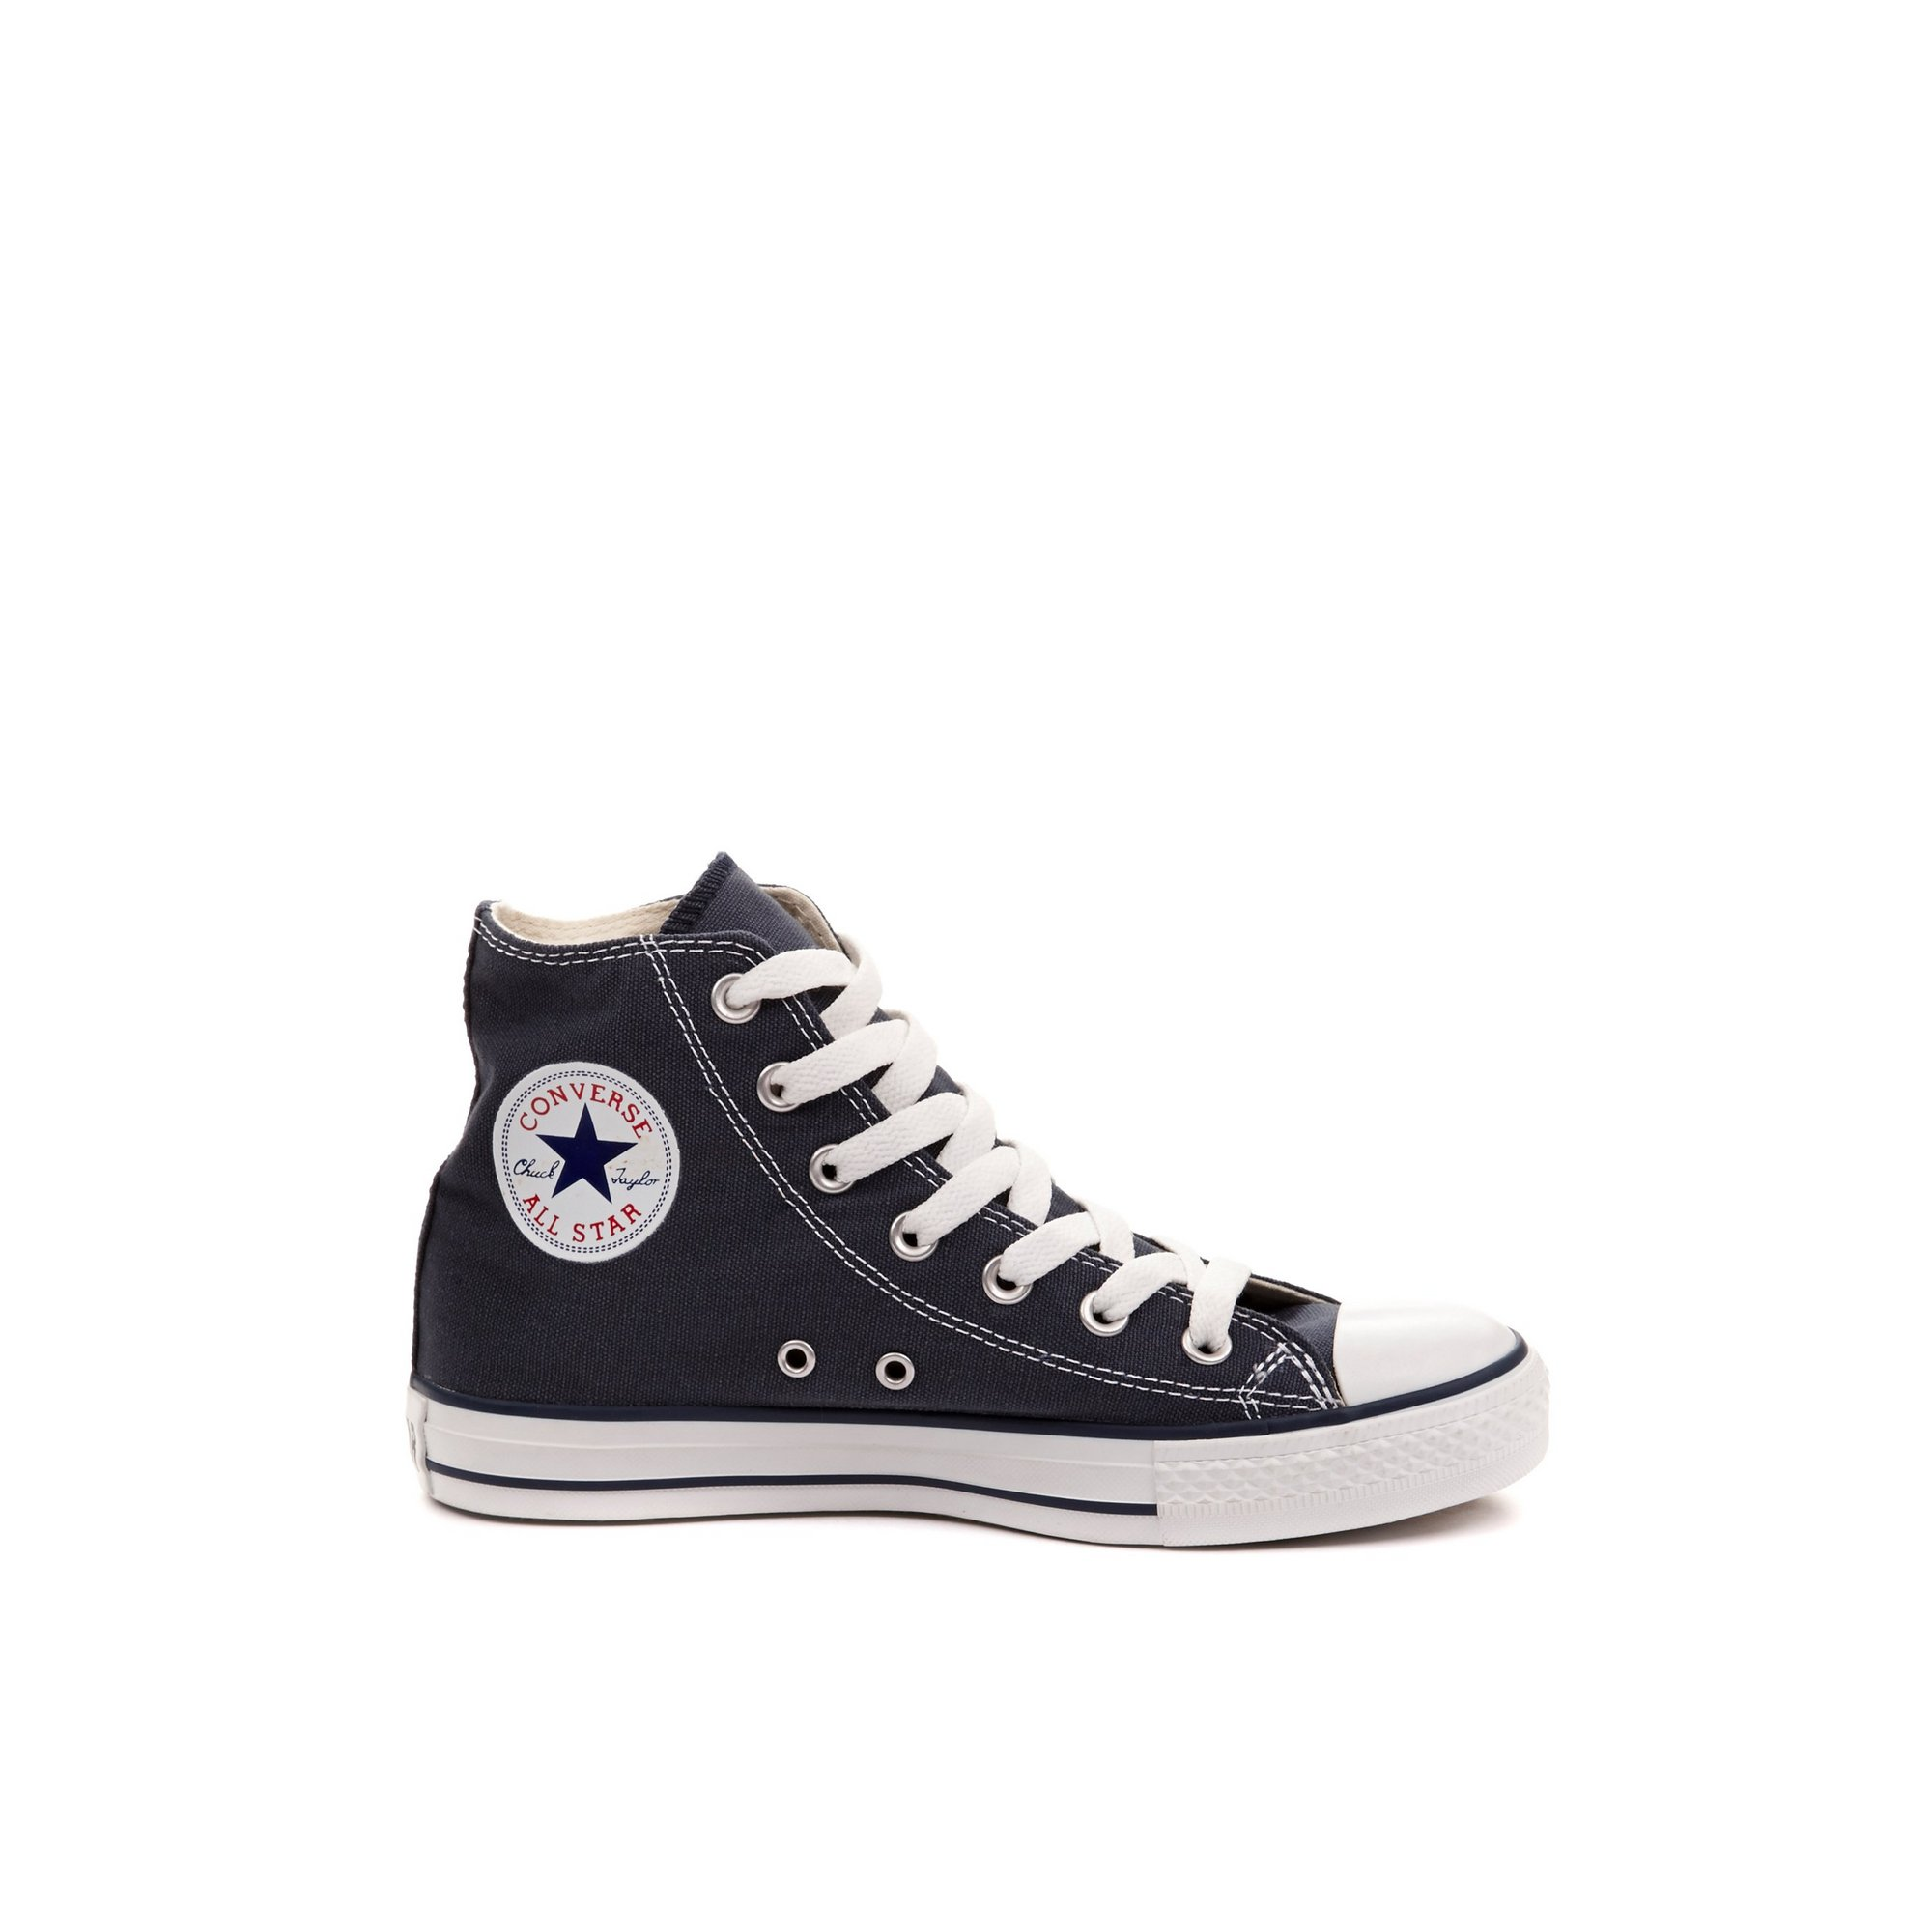 Image of Converse All Star Hi-Top Trainers